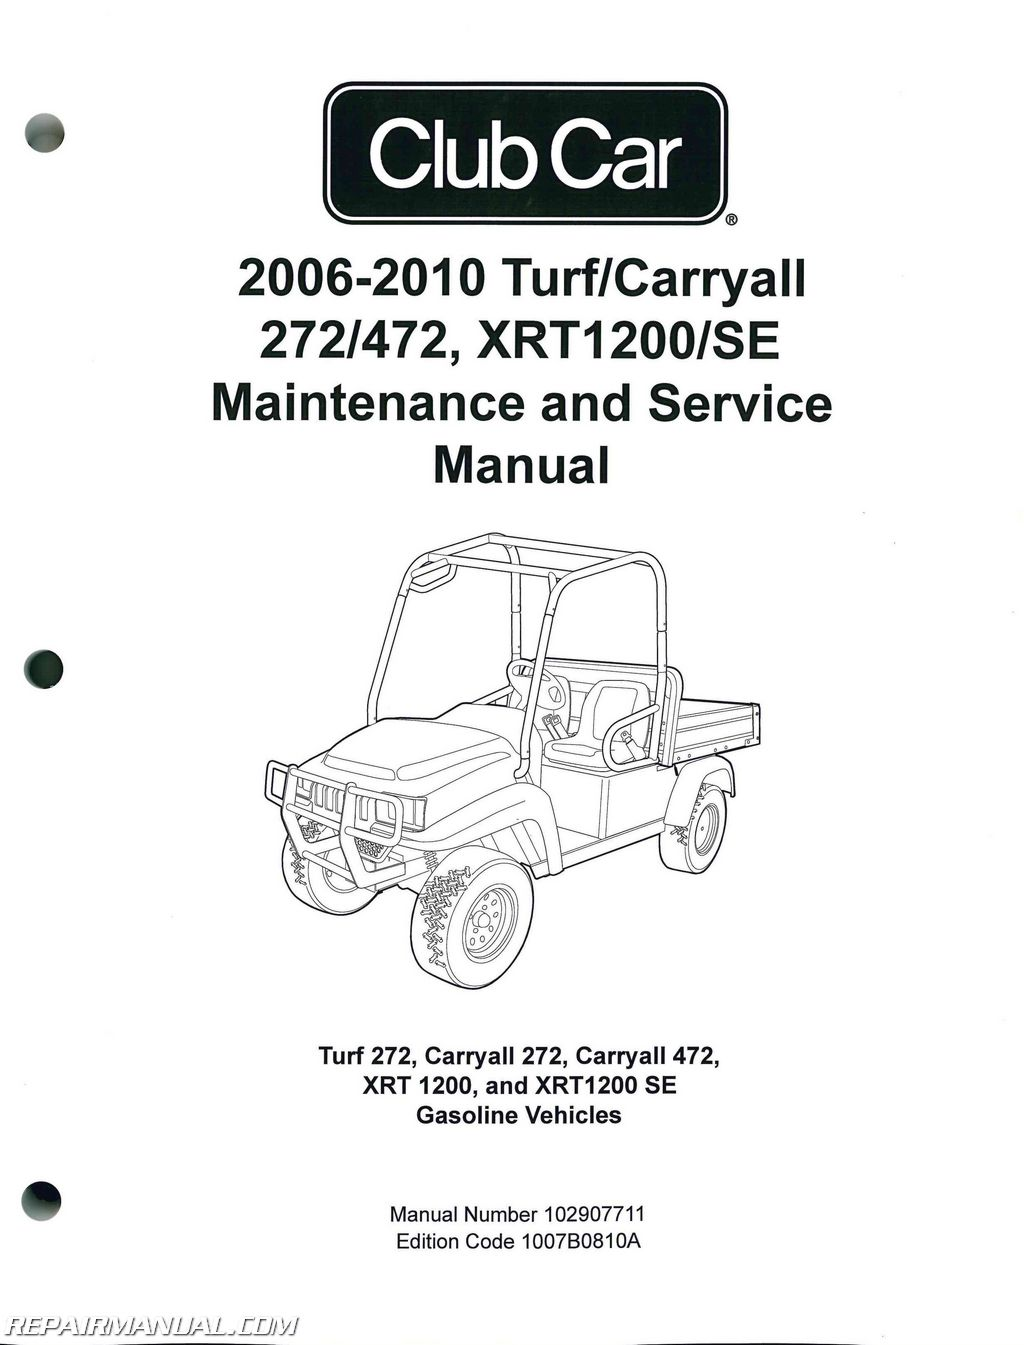 Club Car Carryall Part Diagram